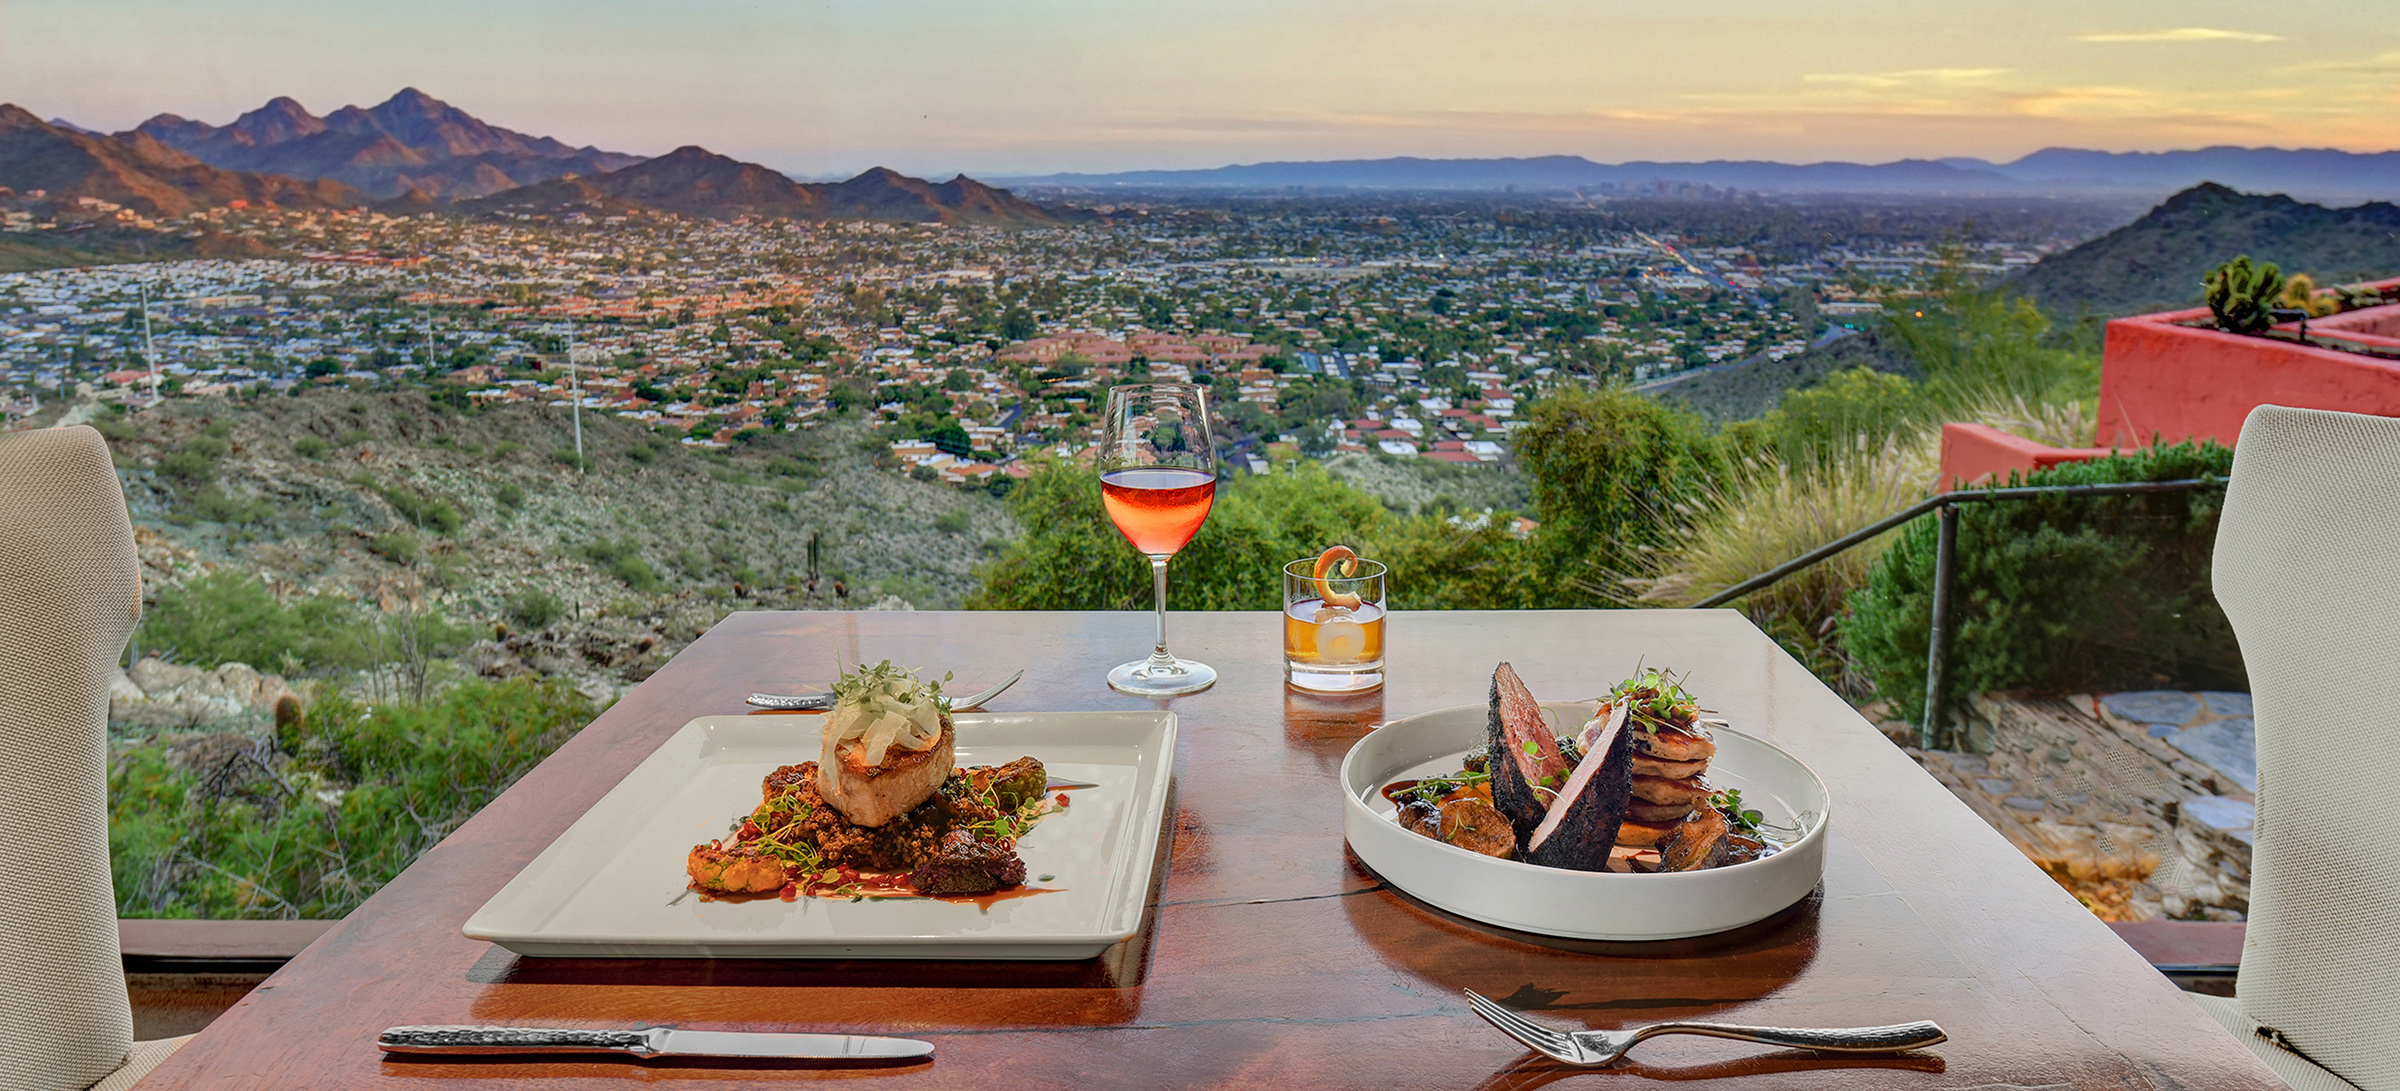 Dinner table set for two, overlooking valley views and mountain peaks at sunset time